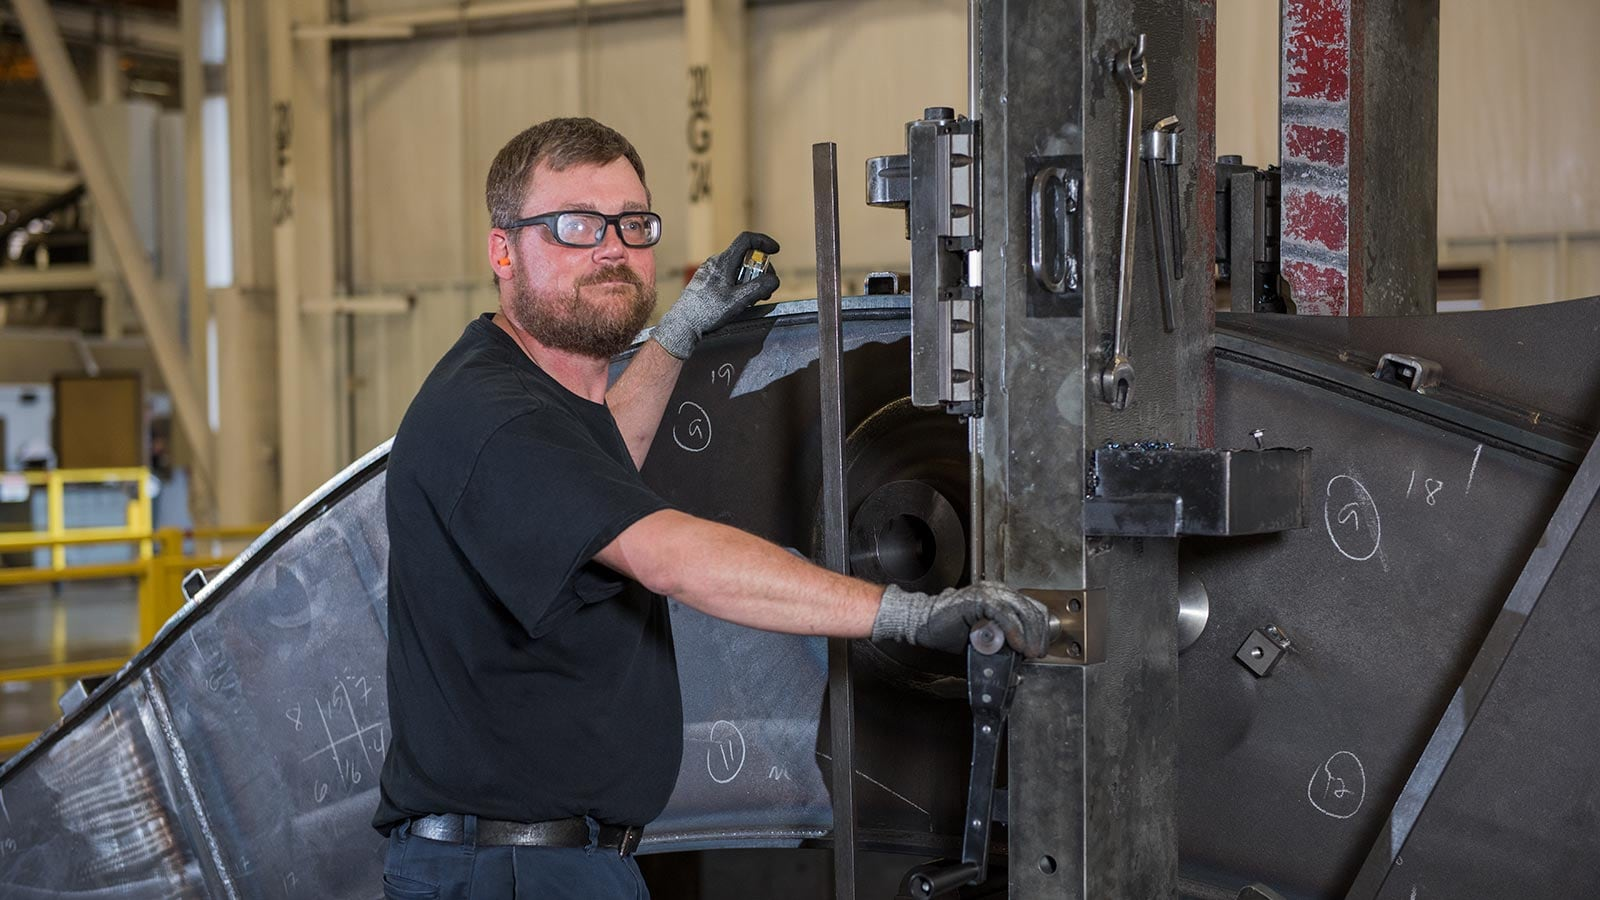 Joe Walker, a machining technician, shown working in the Deere-Hitachi factory